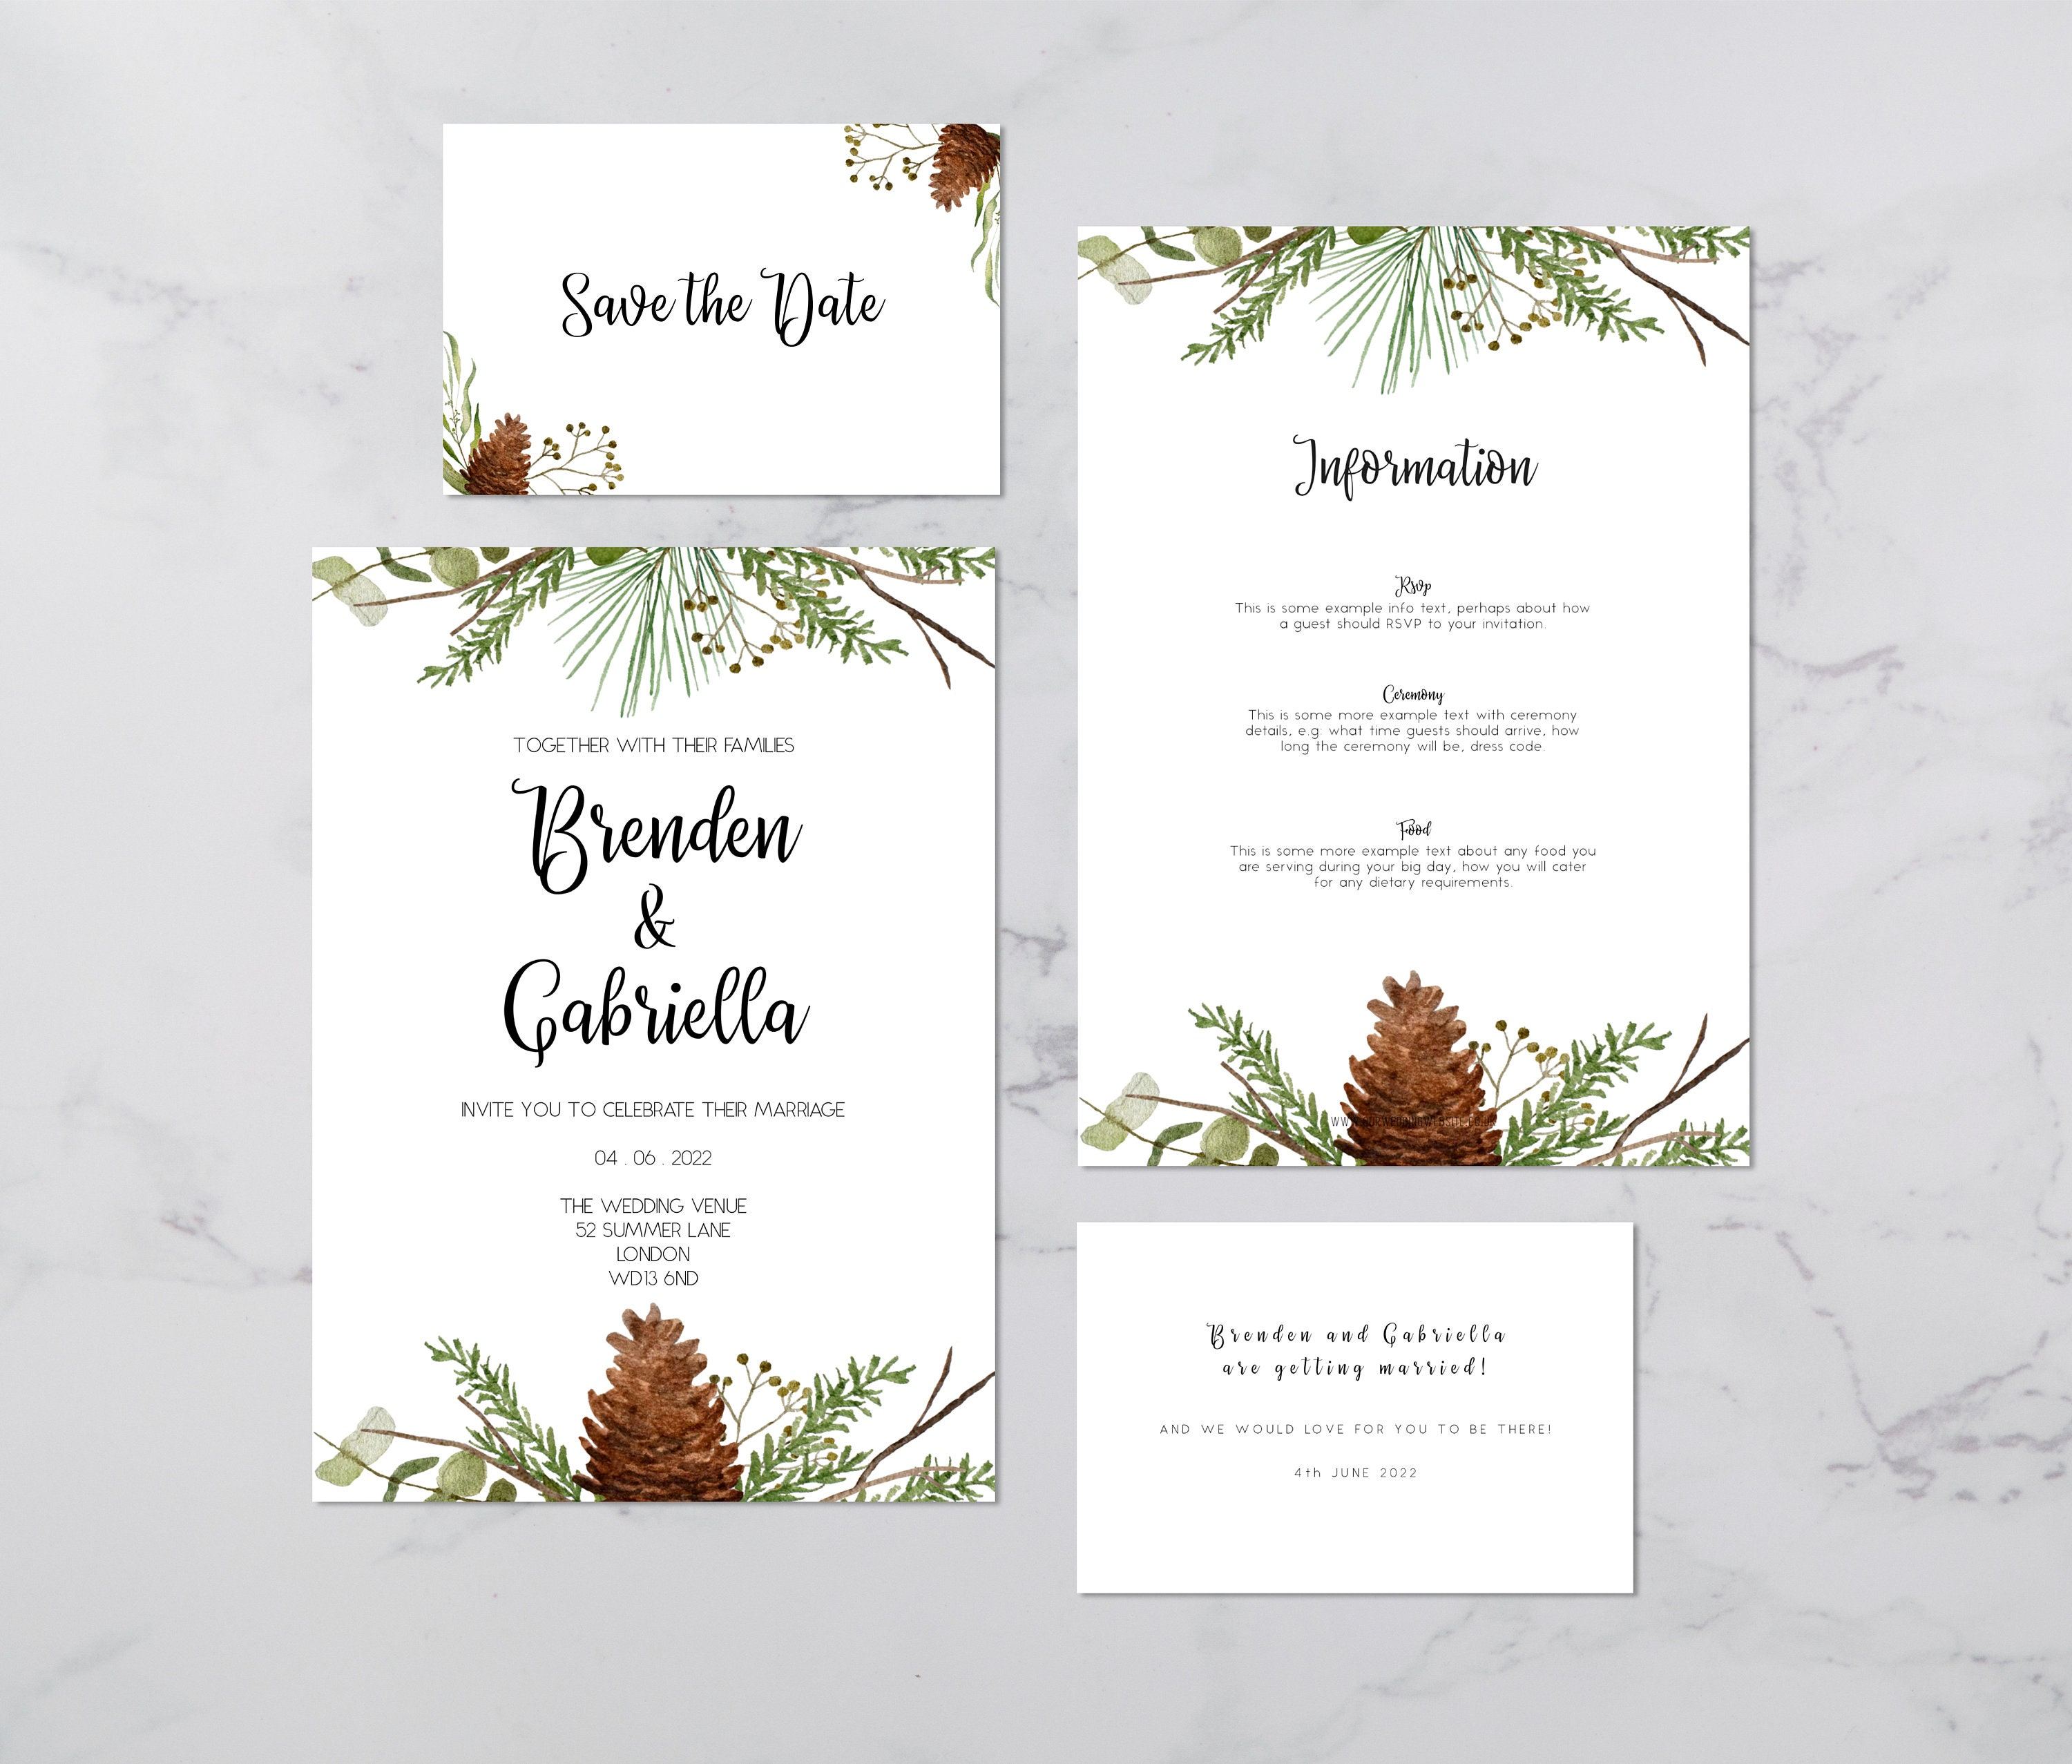 Flat lay photograph of the front and back of a wedding save the date, an invitation card and information card. Each card is white, featuring winter foliage illustrations